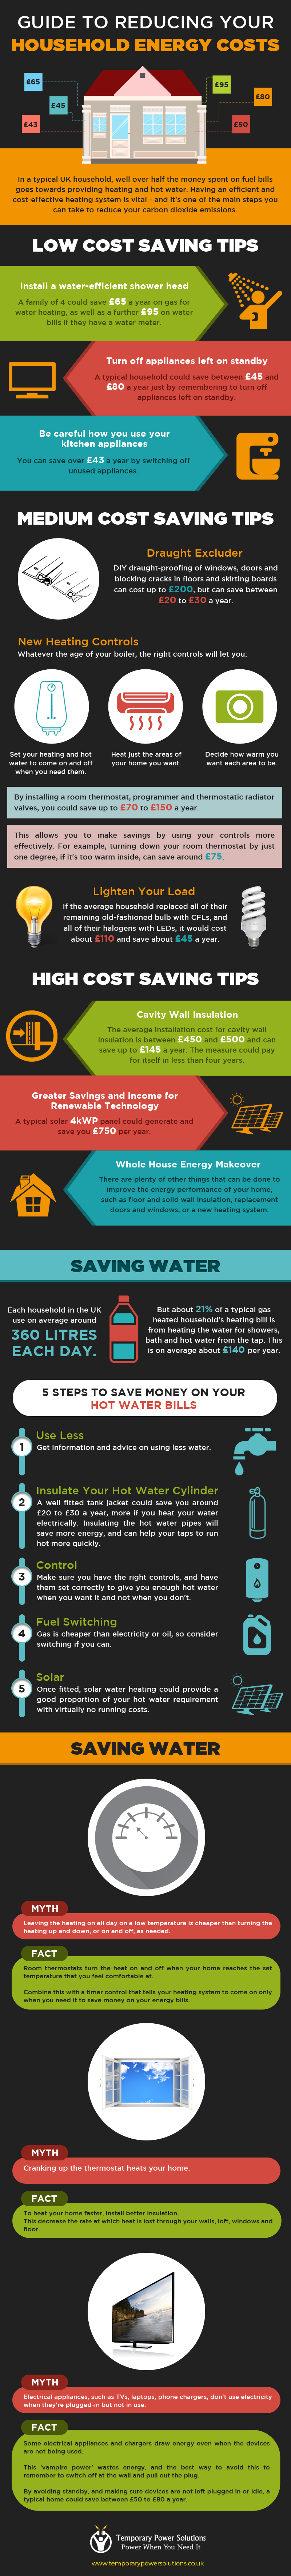 guide-to-reducing-your-household-energy-costs